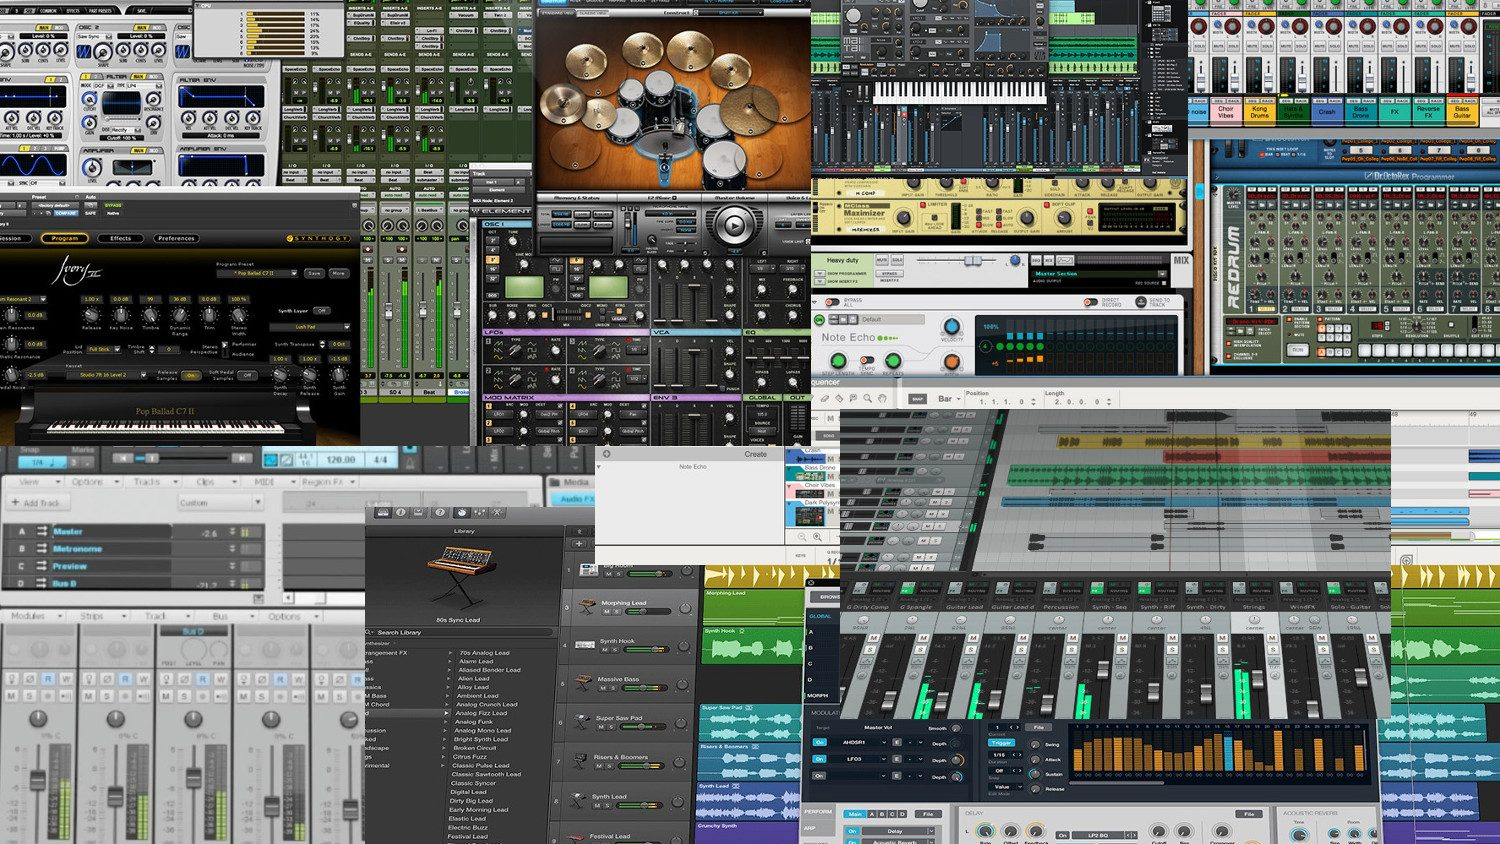 Looking for a new DAW? Here are the best DAWs money can buy